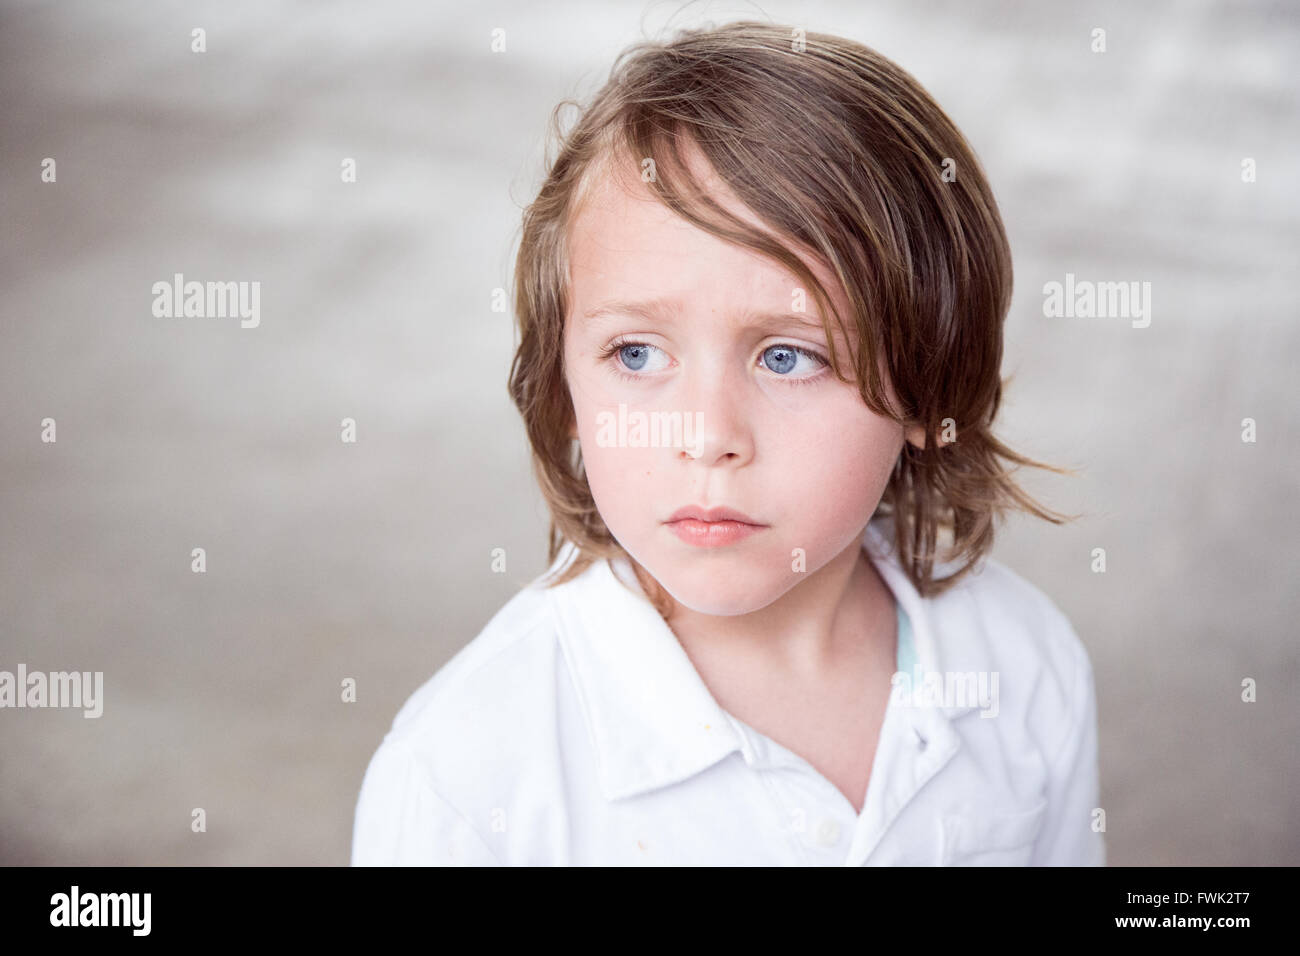 Close-Up Of Boy Looking Away - Stock Image